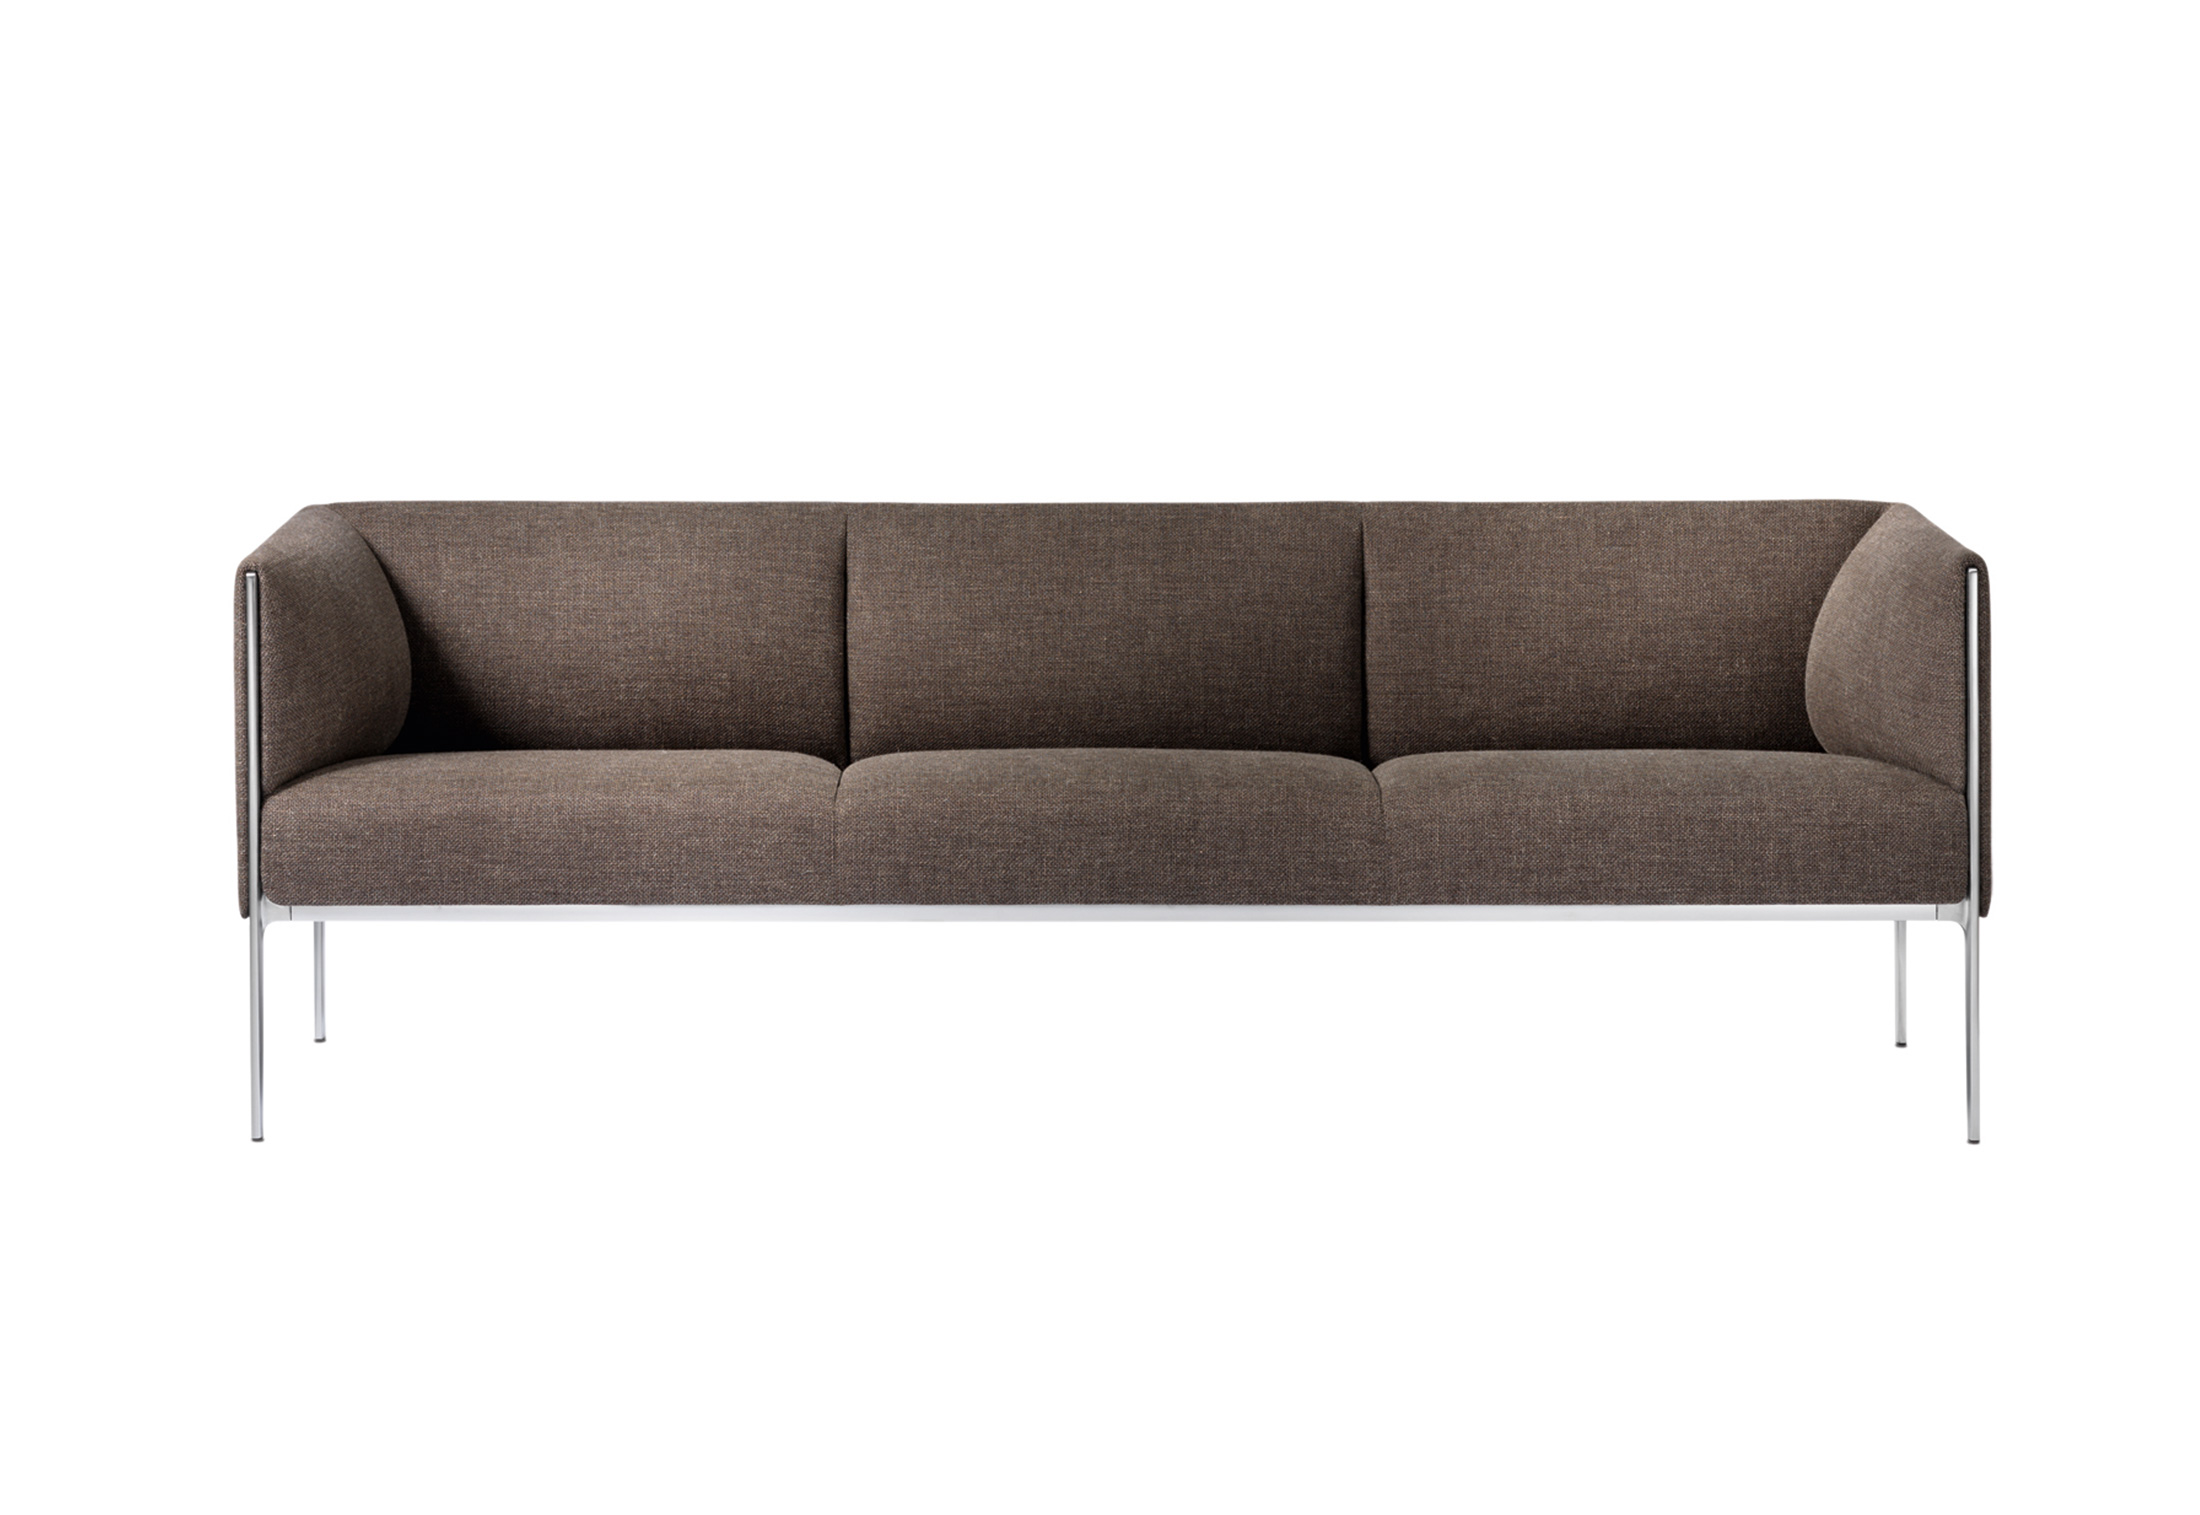 cheap sofa online australia pull out beds 3 seater sofas home the honoroak